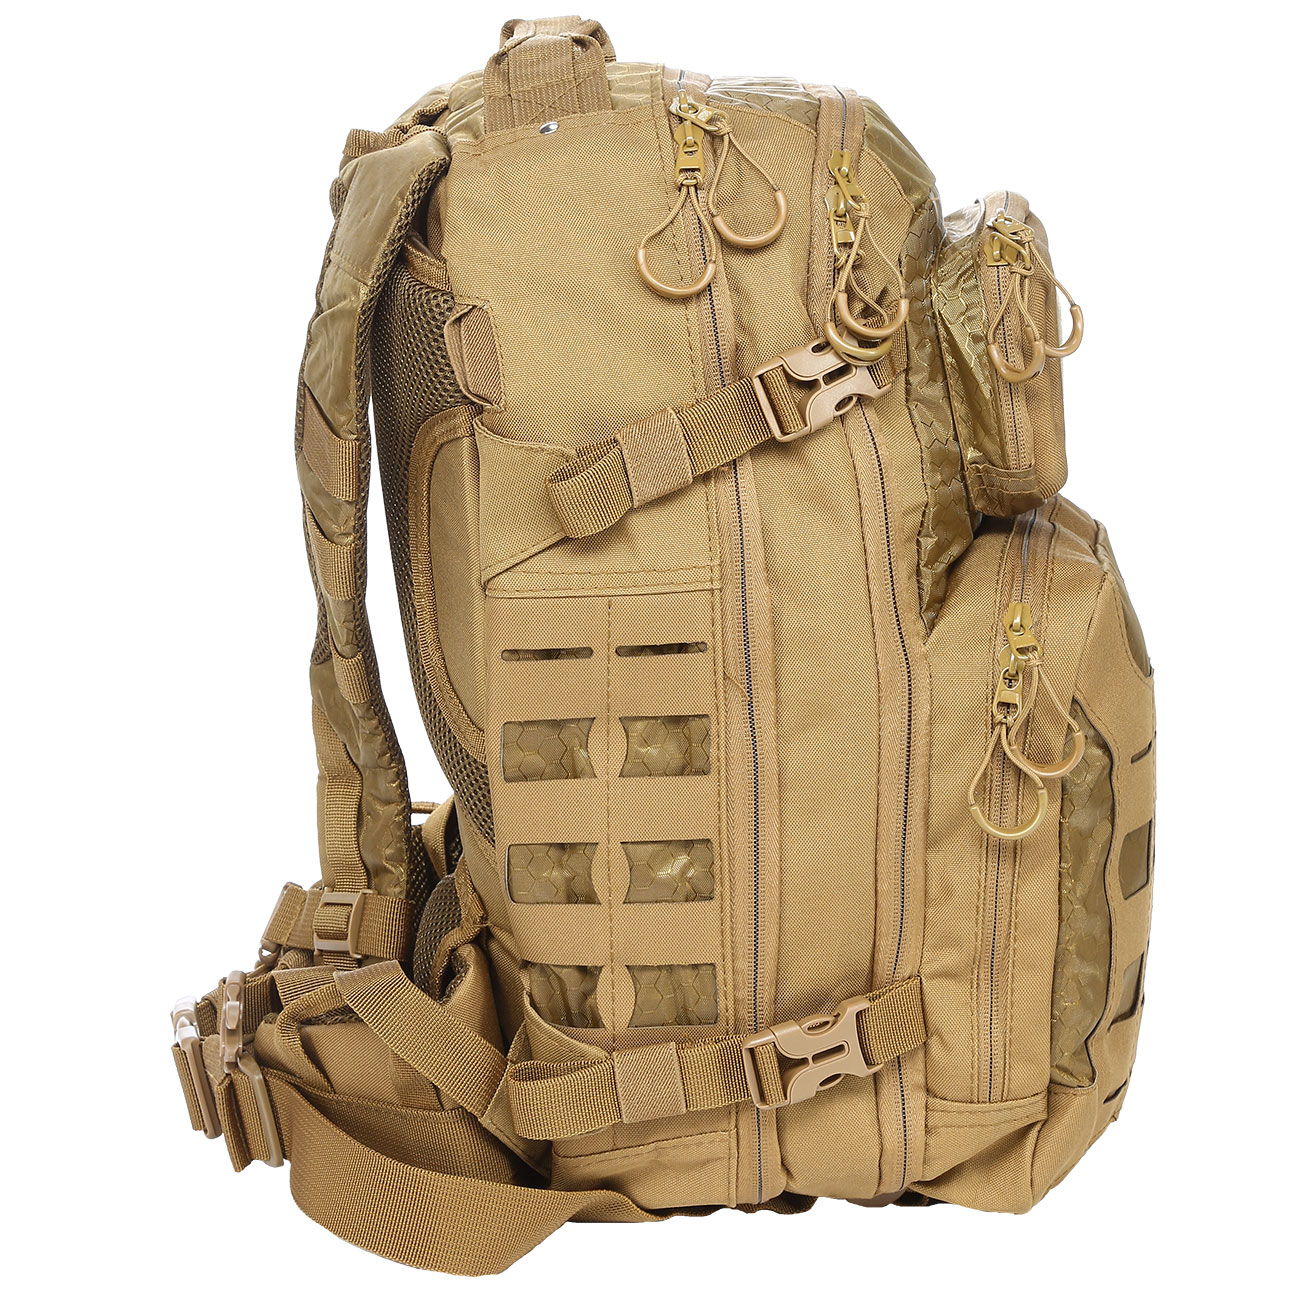 MFH Rucksack Operation I 30 Liter coyote 1